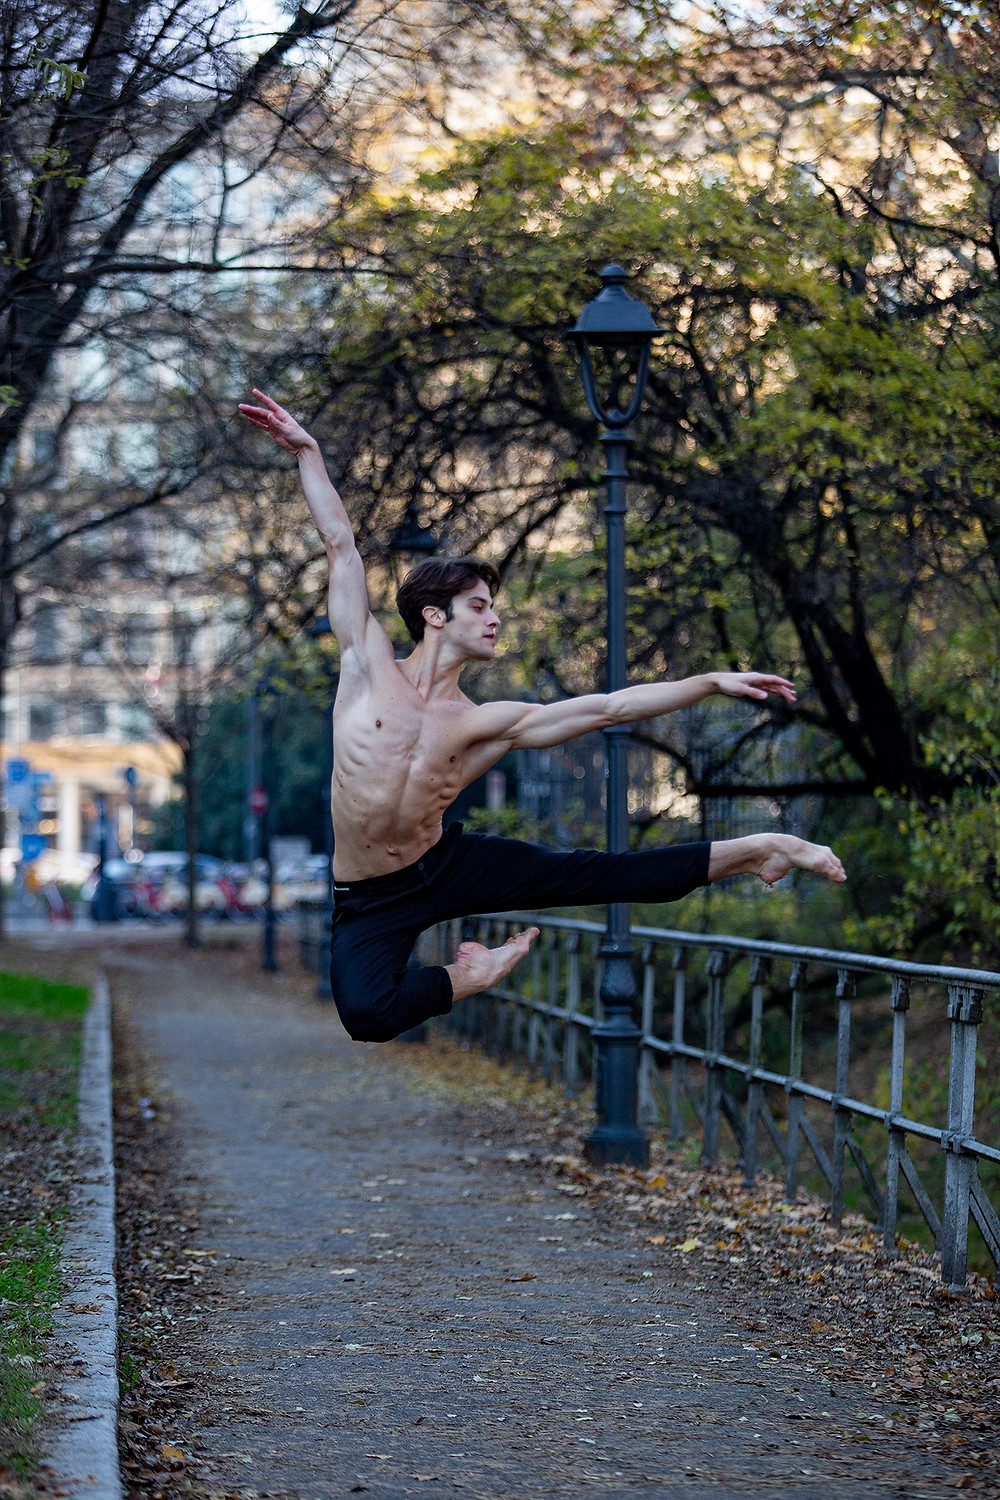 Dancer Claudio Coviello performing a dance move out in the street